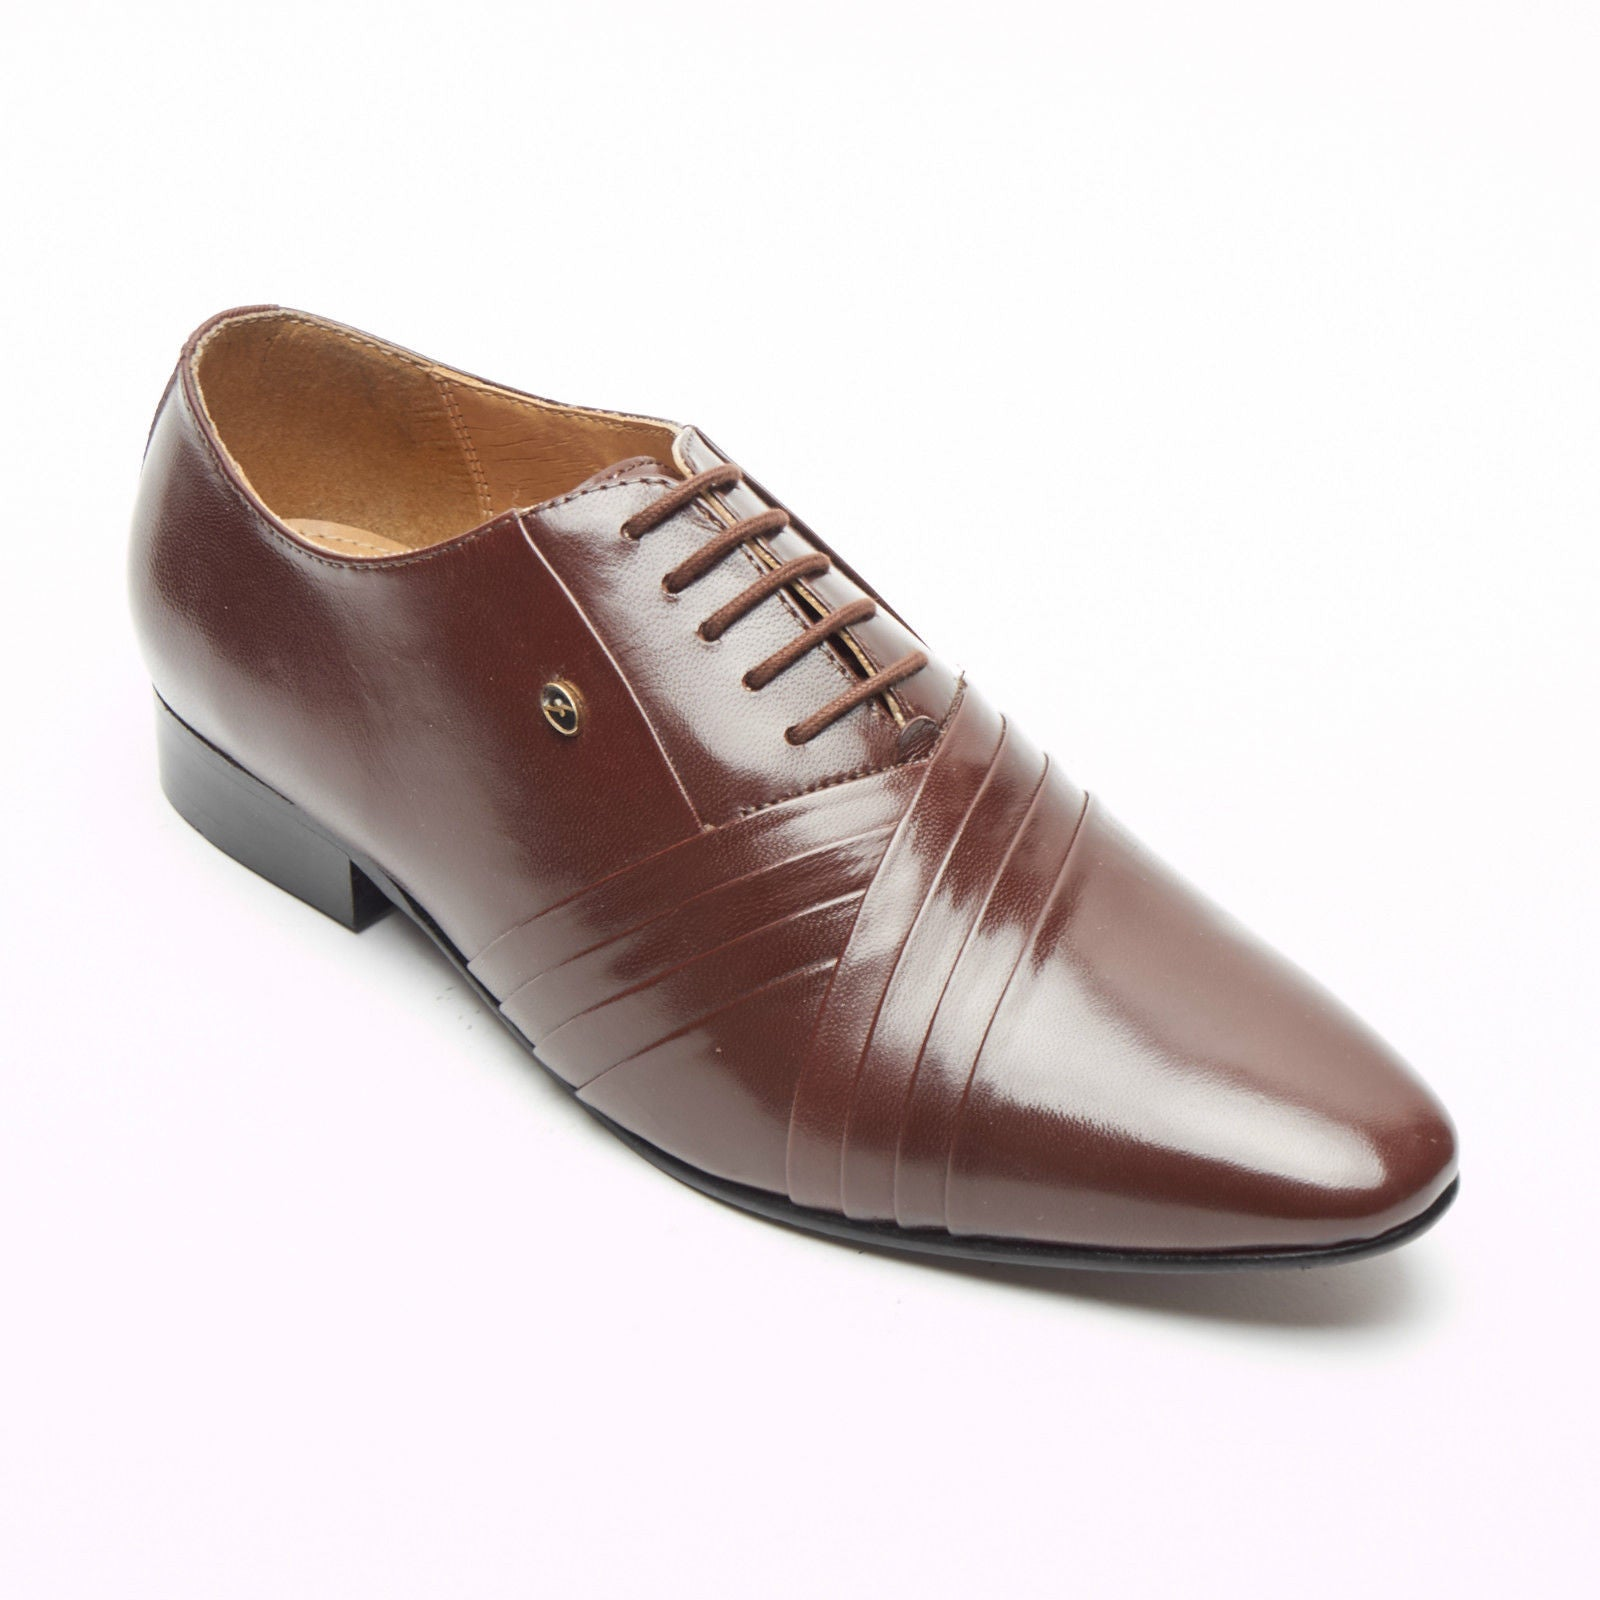 Mens Leather Spanish Shoes - 33472